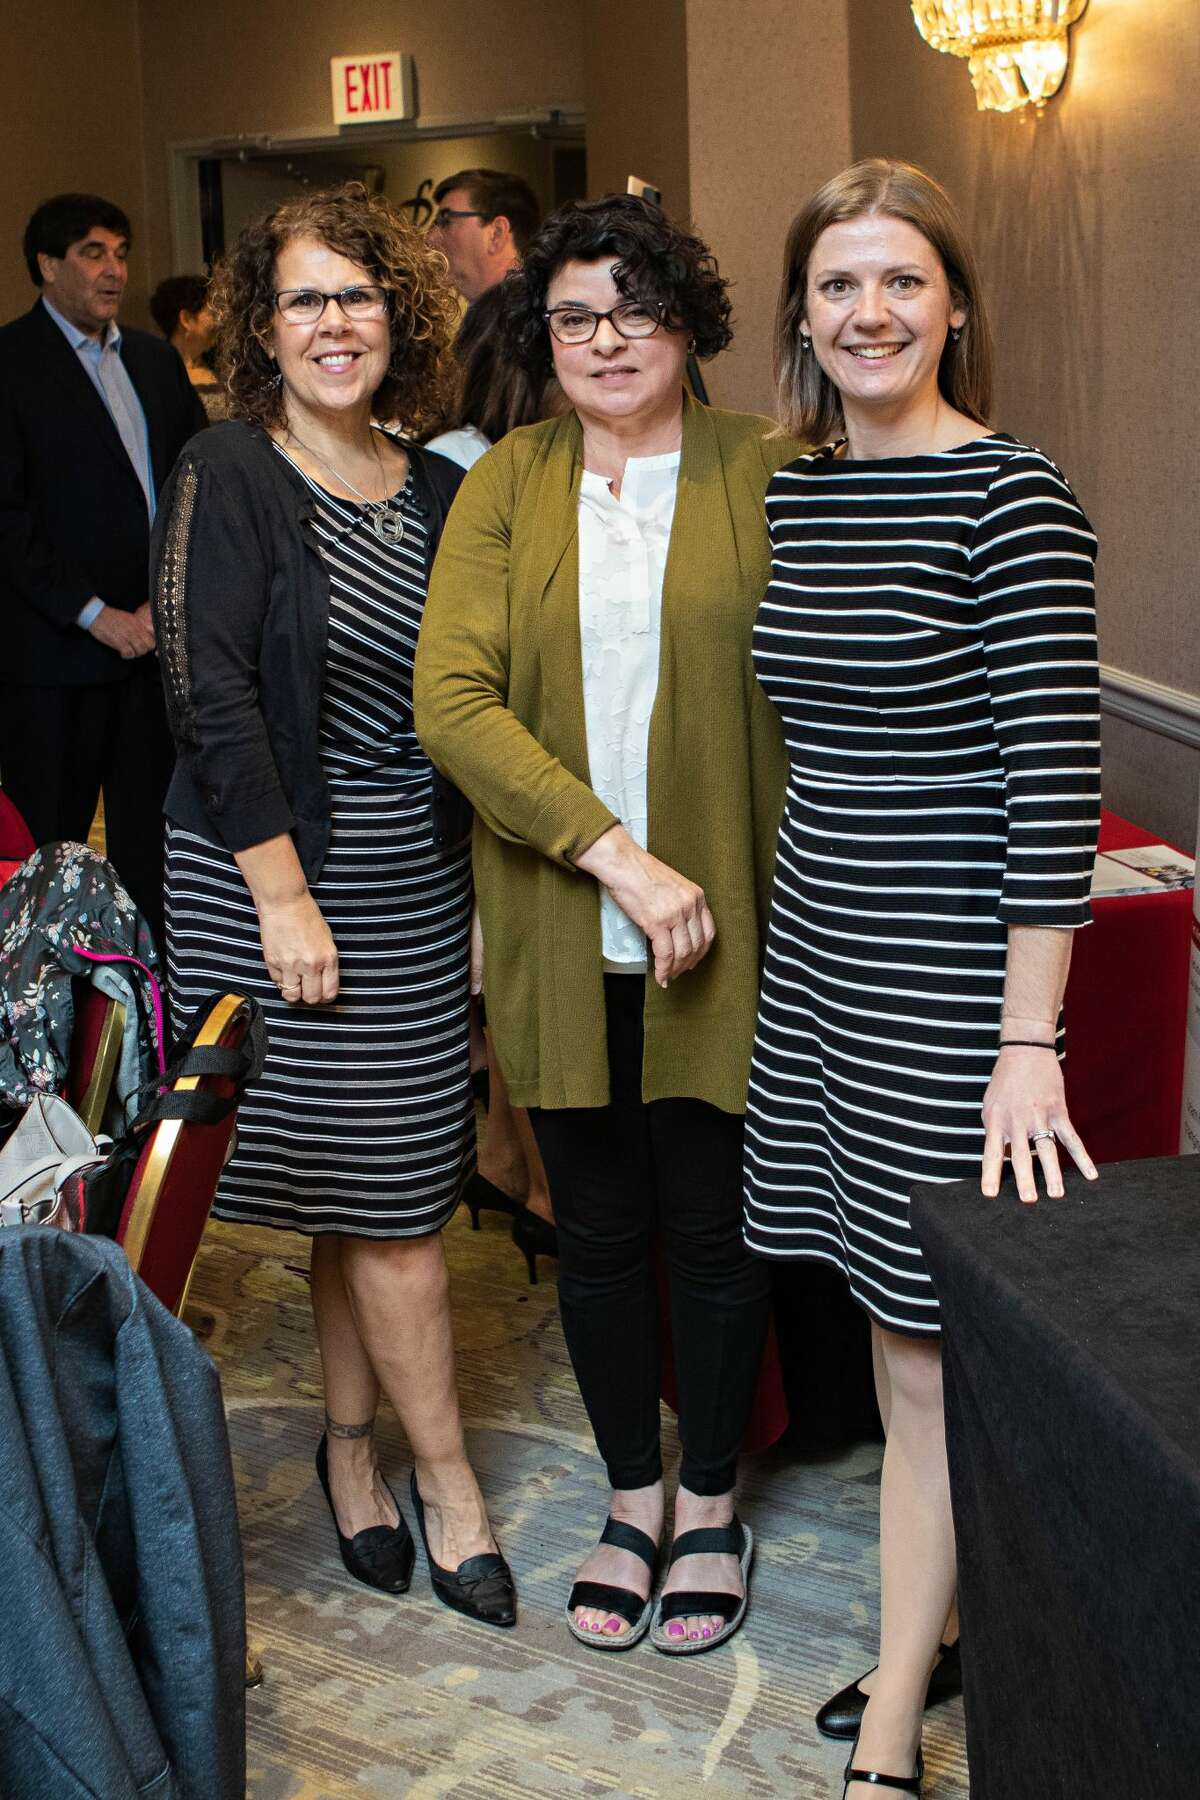 Were you Seen at the Times Union Salute to Nurses, sponsored by St. Peter's Health Partners and Excelsior College, at the Albany Marriott on Wolf Road in Colonie on May 10, 2019?